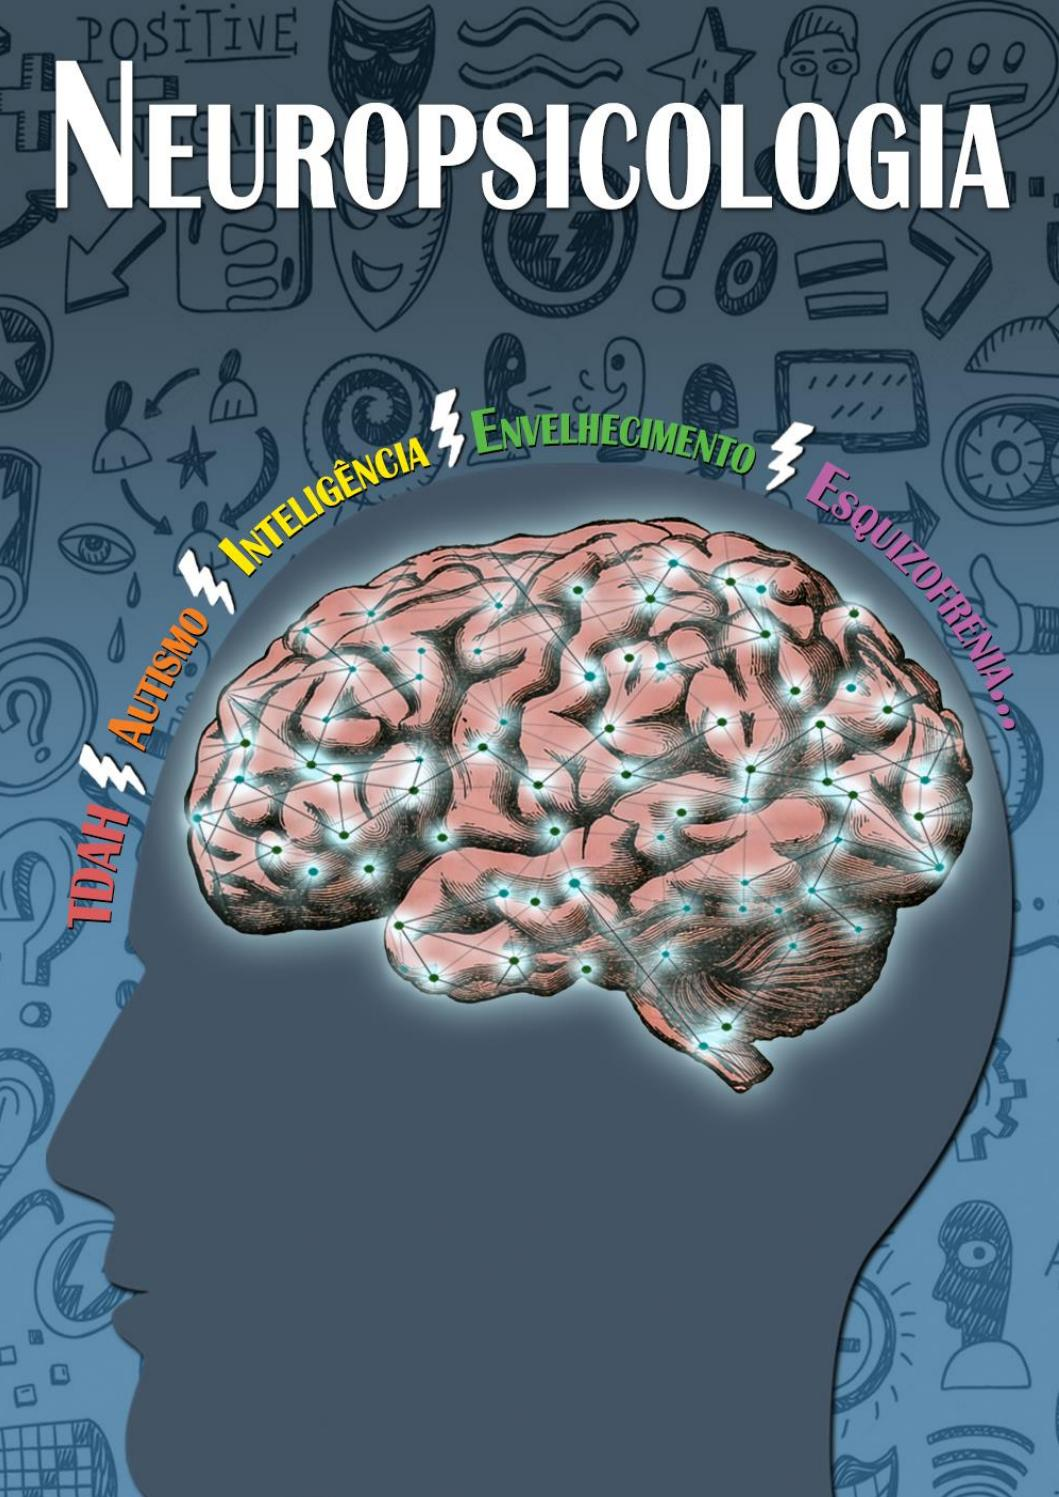 Neuropsicologia by Atilio - Issuu